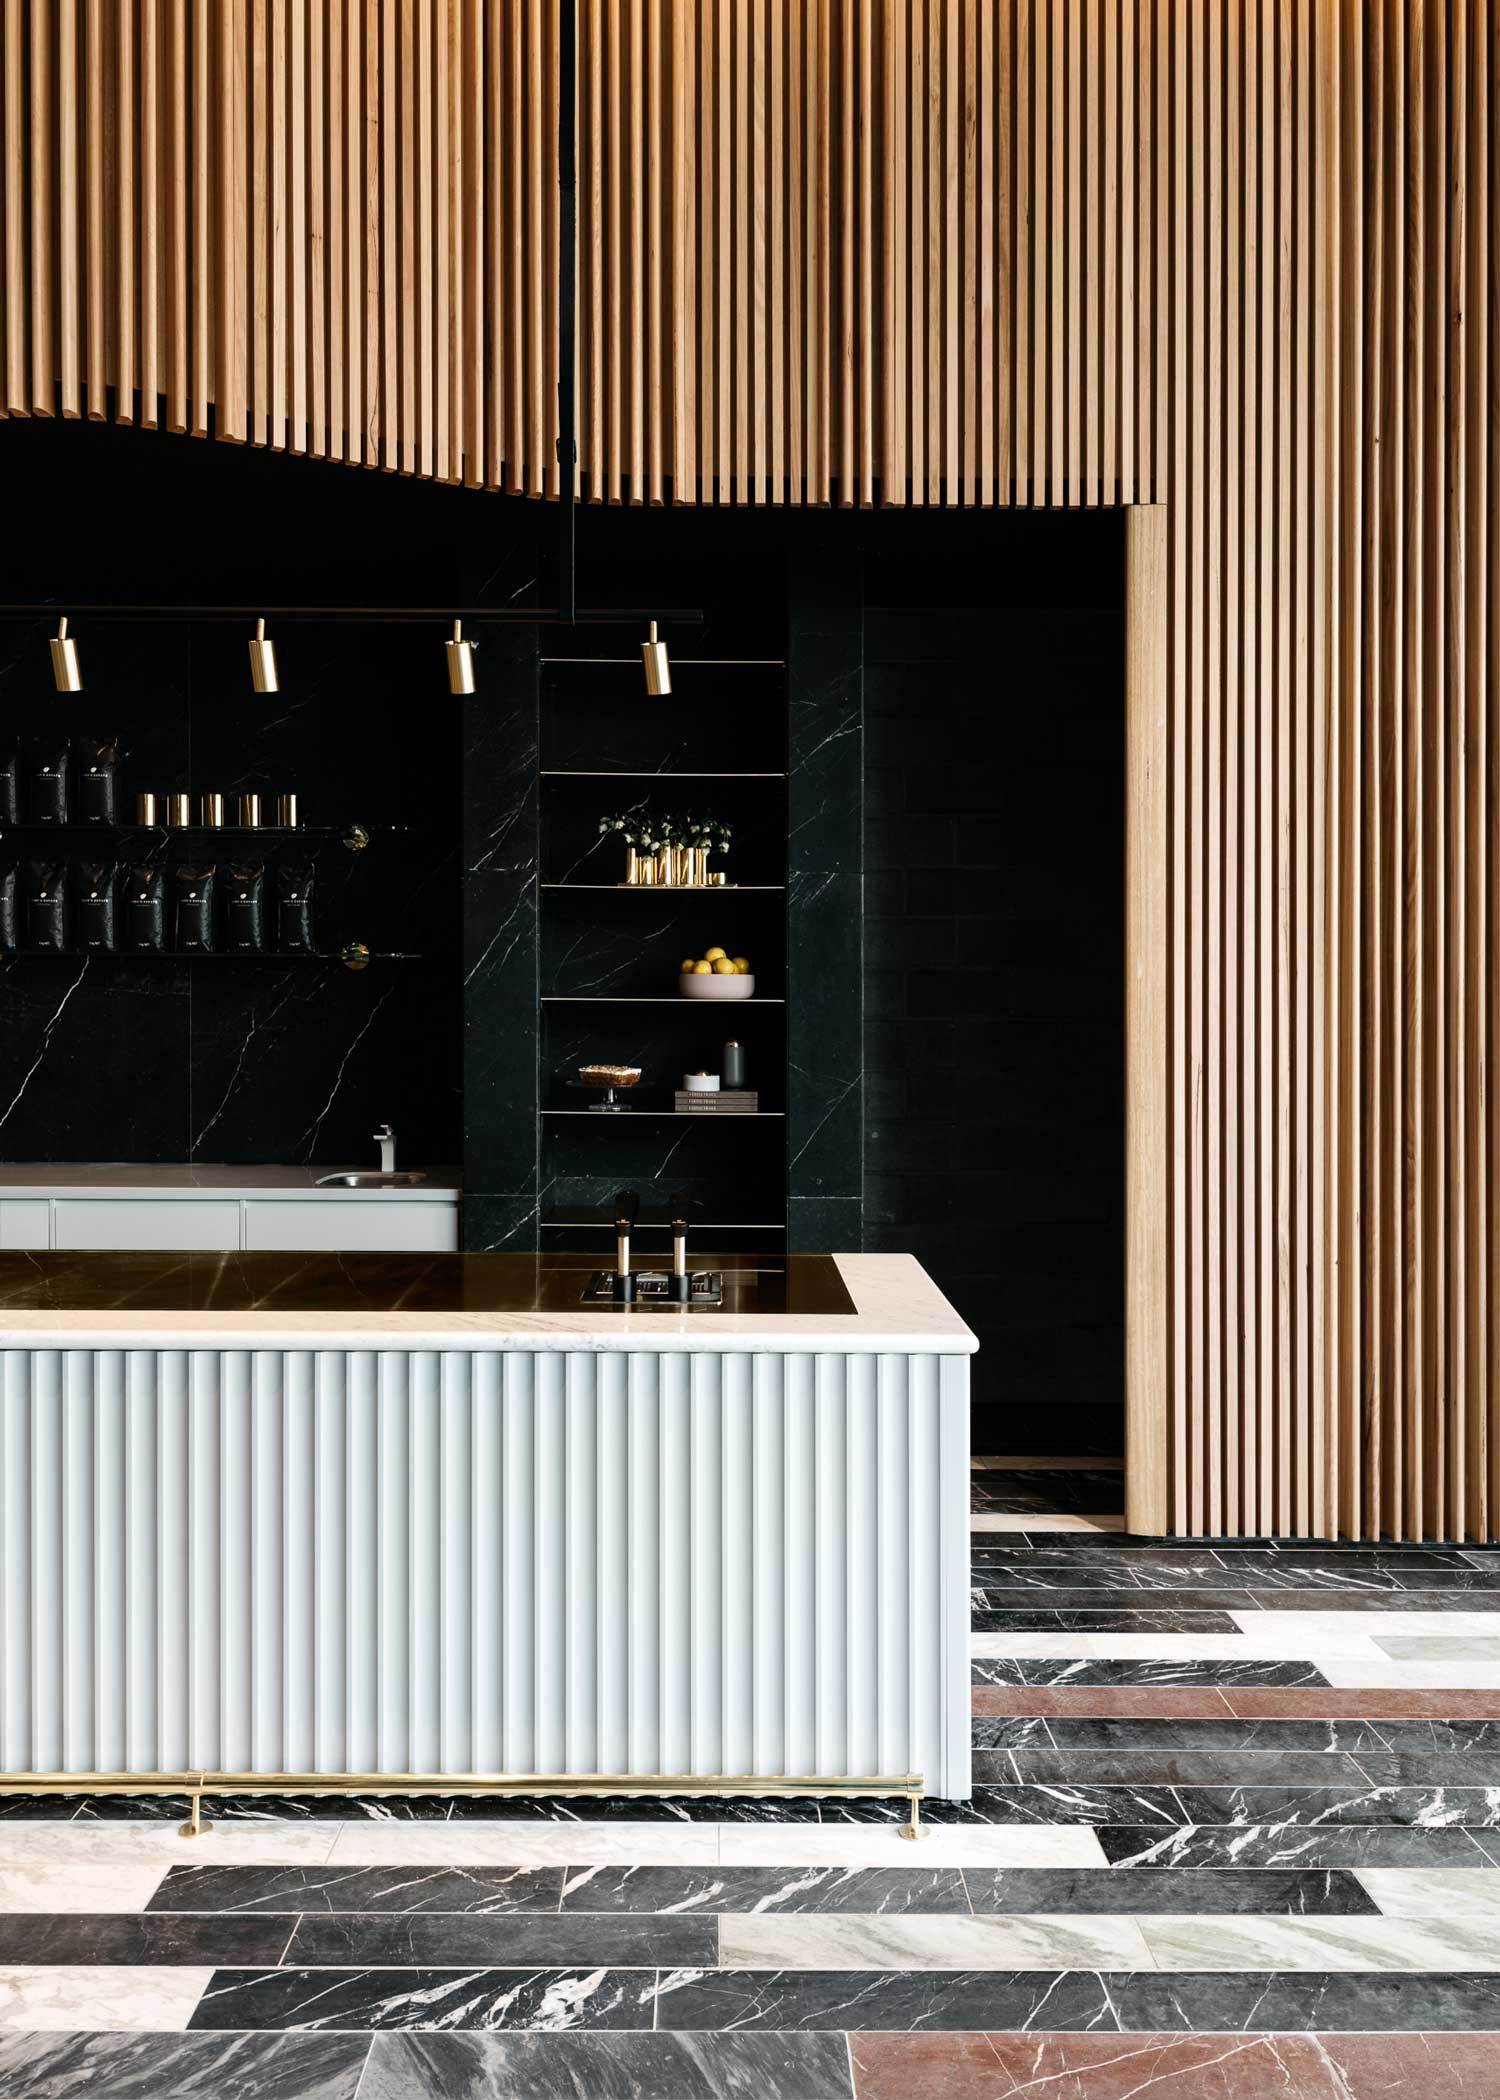 Toby S Estate Cafe In Darling Square Sydney By Studio Tate Yellowtrace Cafe Design Restaurant Design Cafe Seating